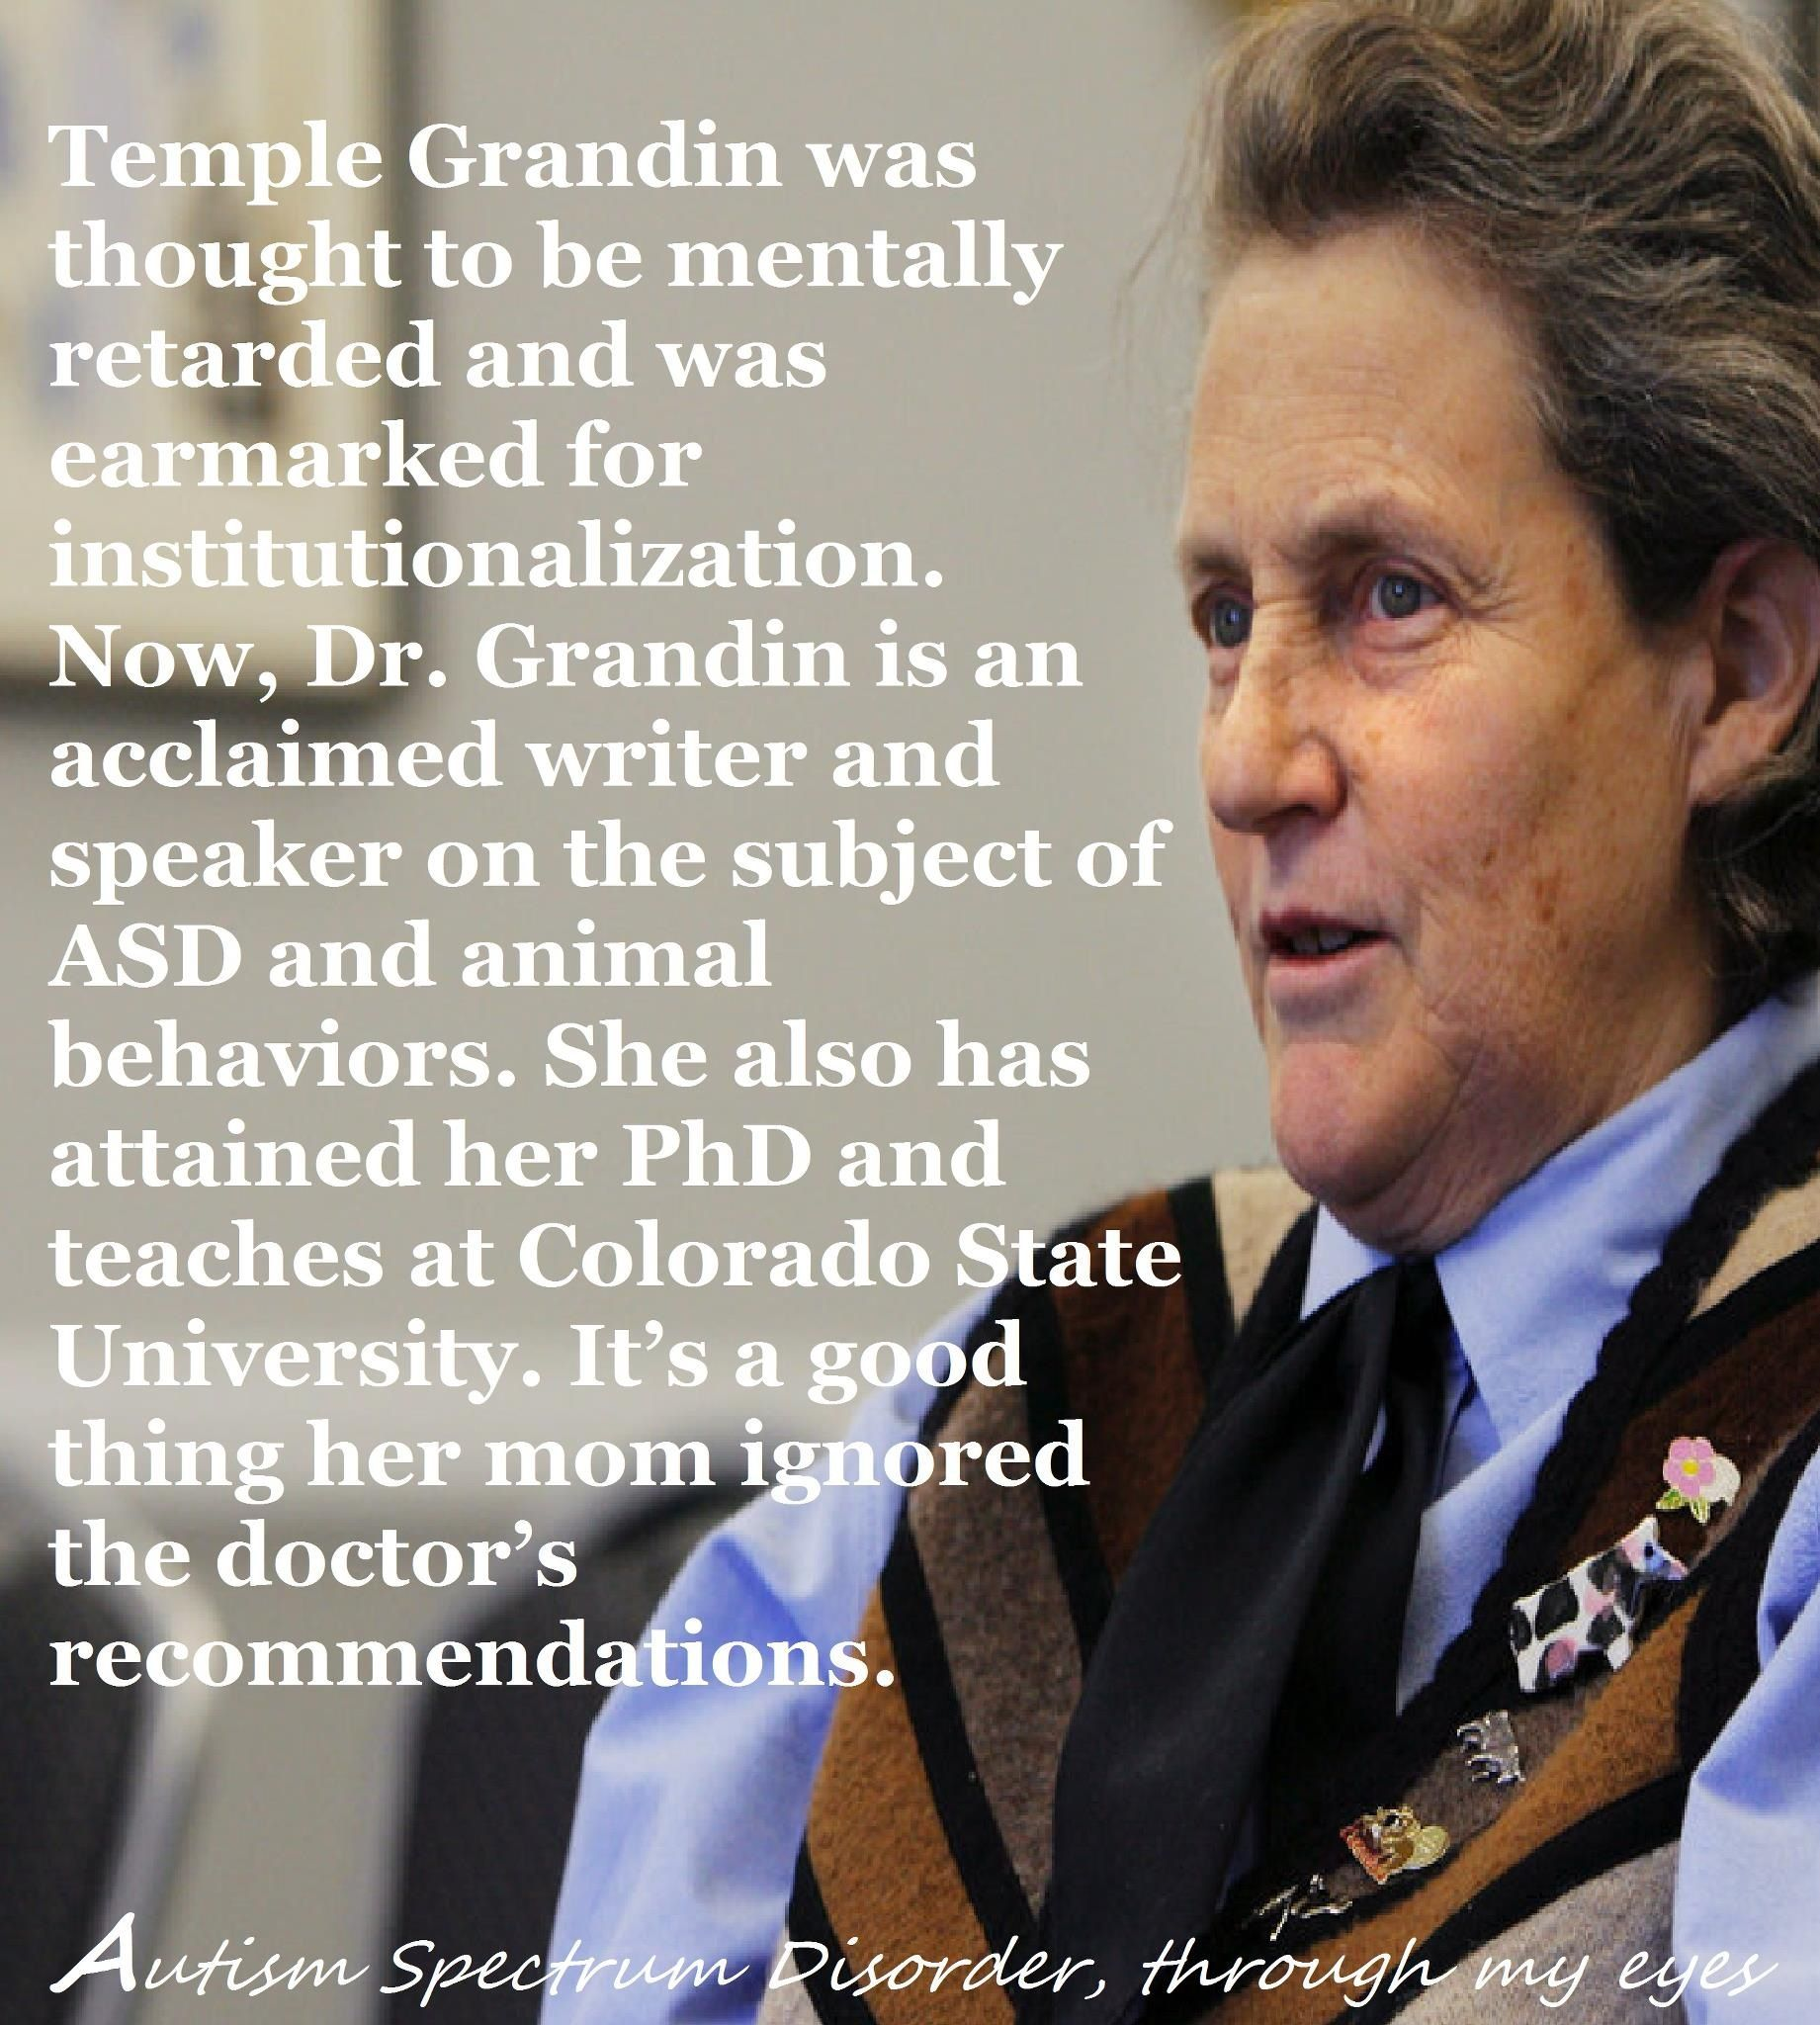 dr temple grandin i saw this amazing lady on katie couric s show love temple grandin and this quote the focus should be teaching people autism to adapt to the social world around them while still retaining the